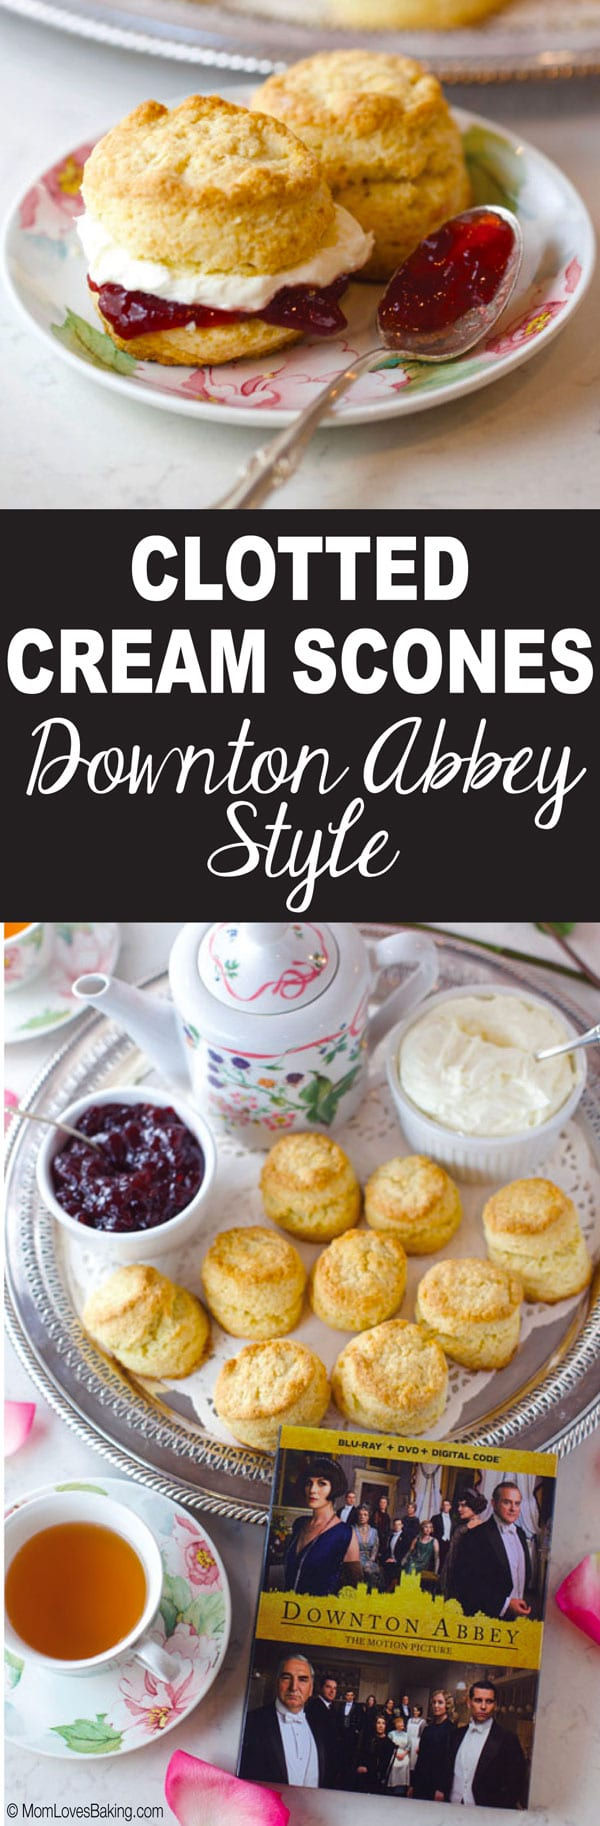 Clotted cream scones Downton Abbey Style